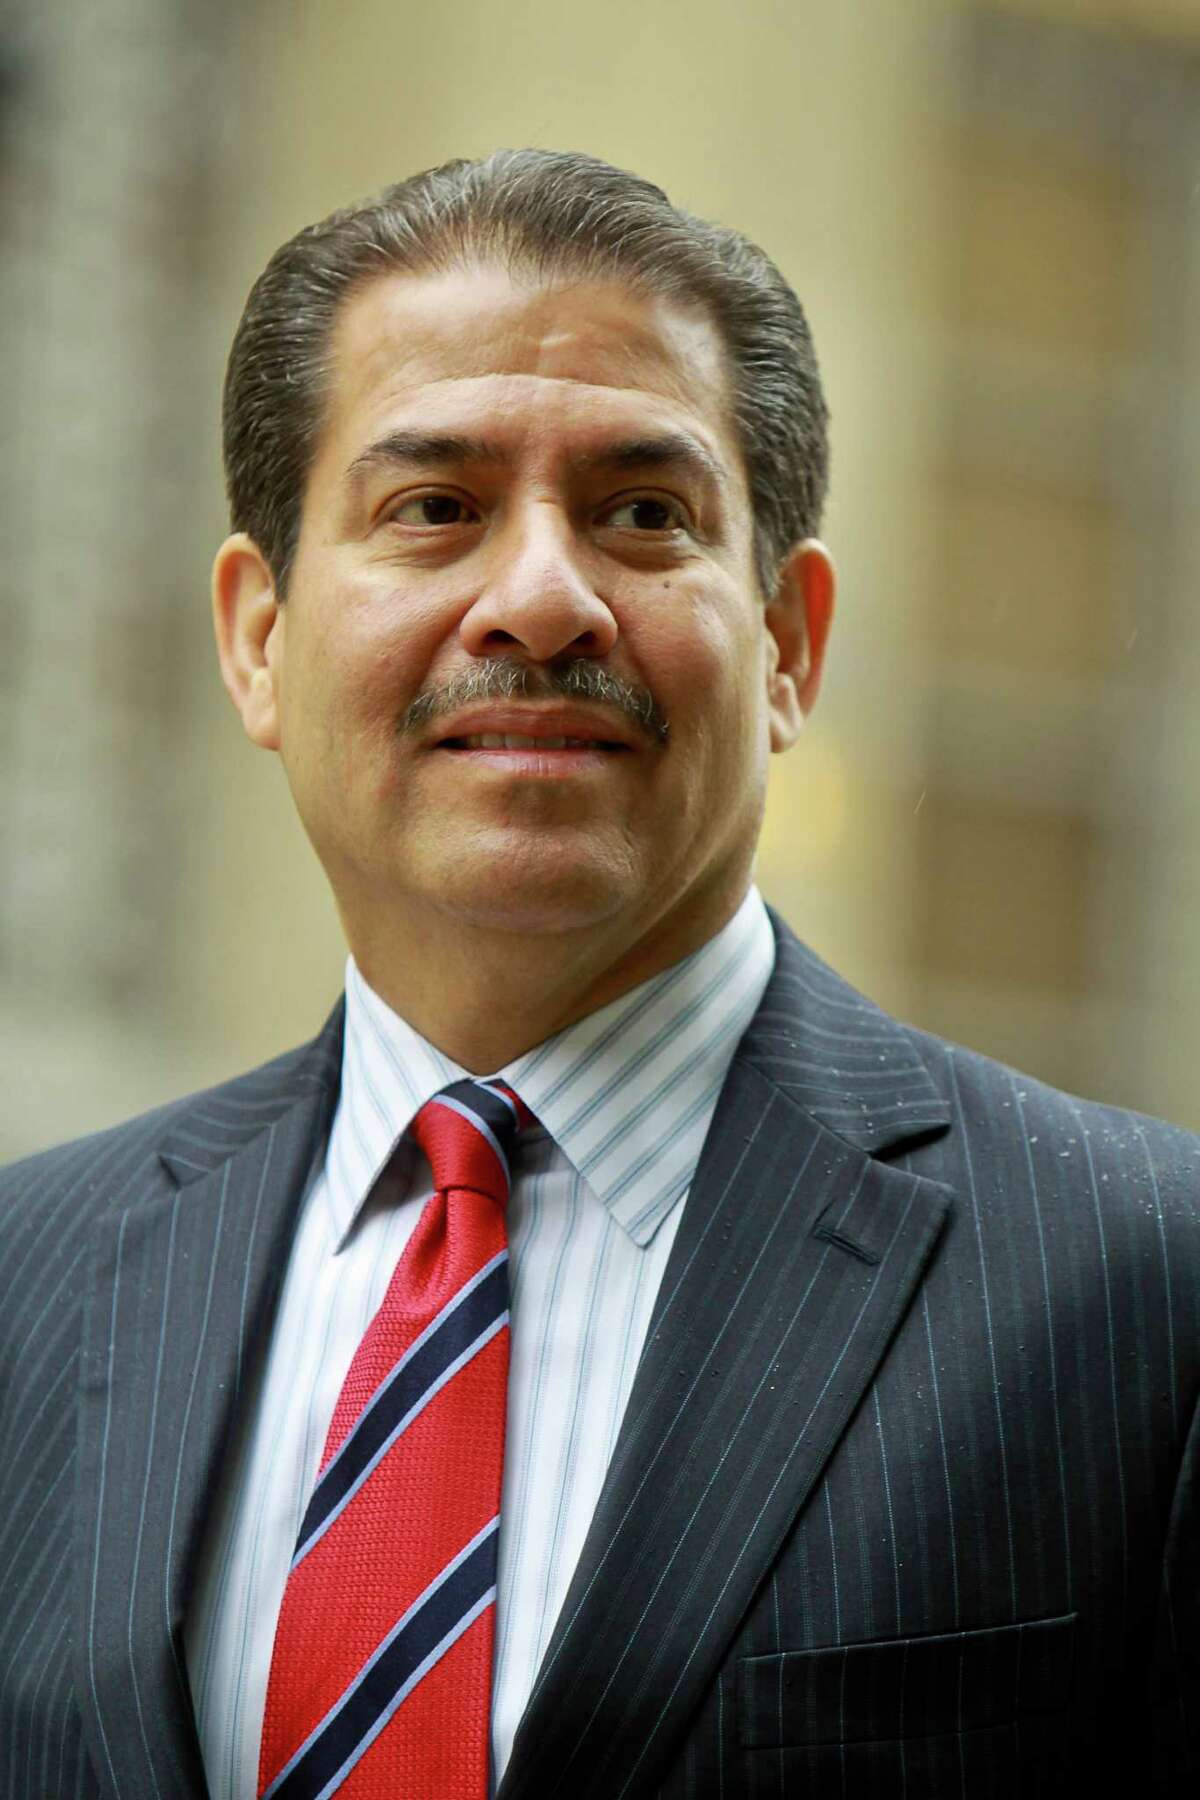 Adrian Garcia, candidate for mayor of Houston at City Hall. (For the Chronicle/Gary Fountain, May 12, 2015)